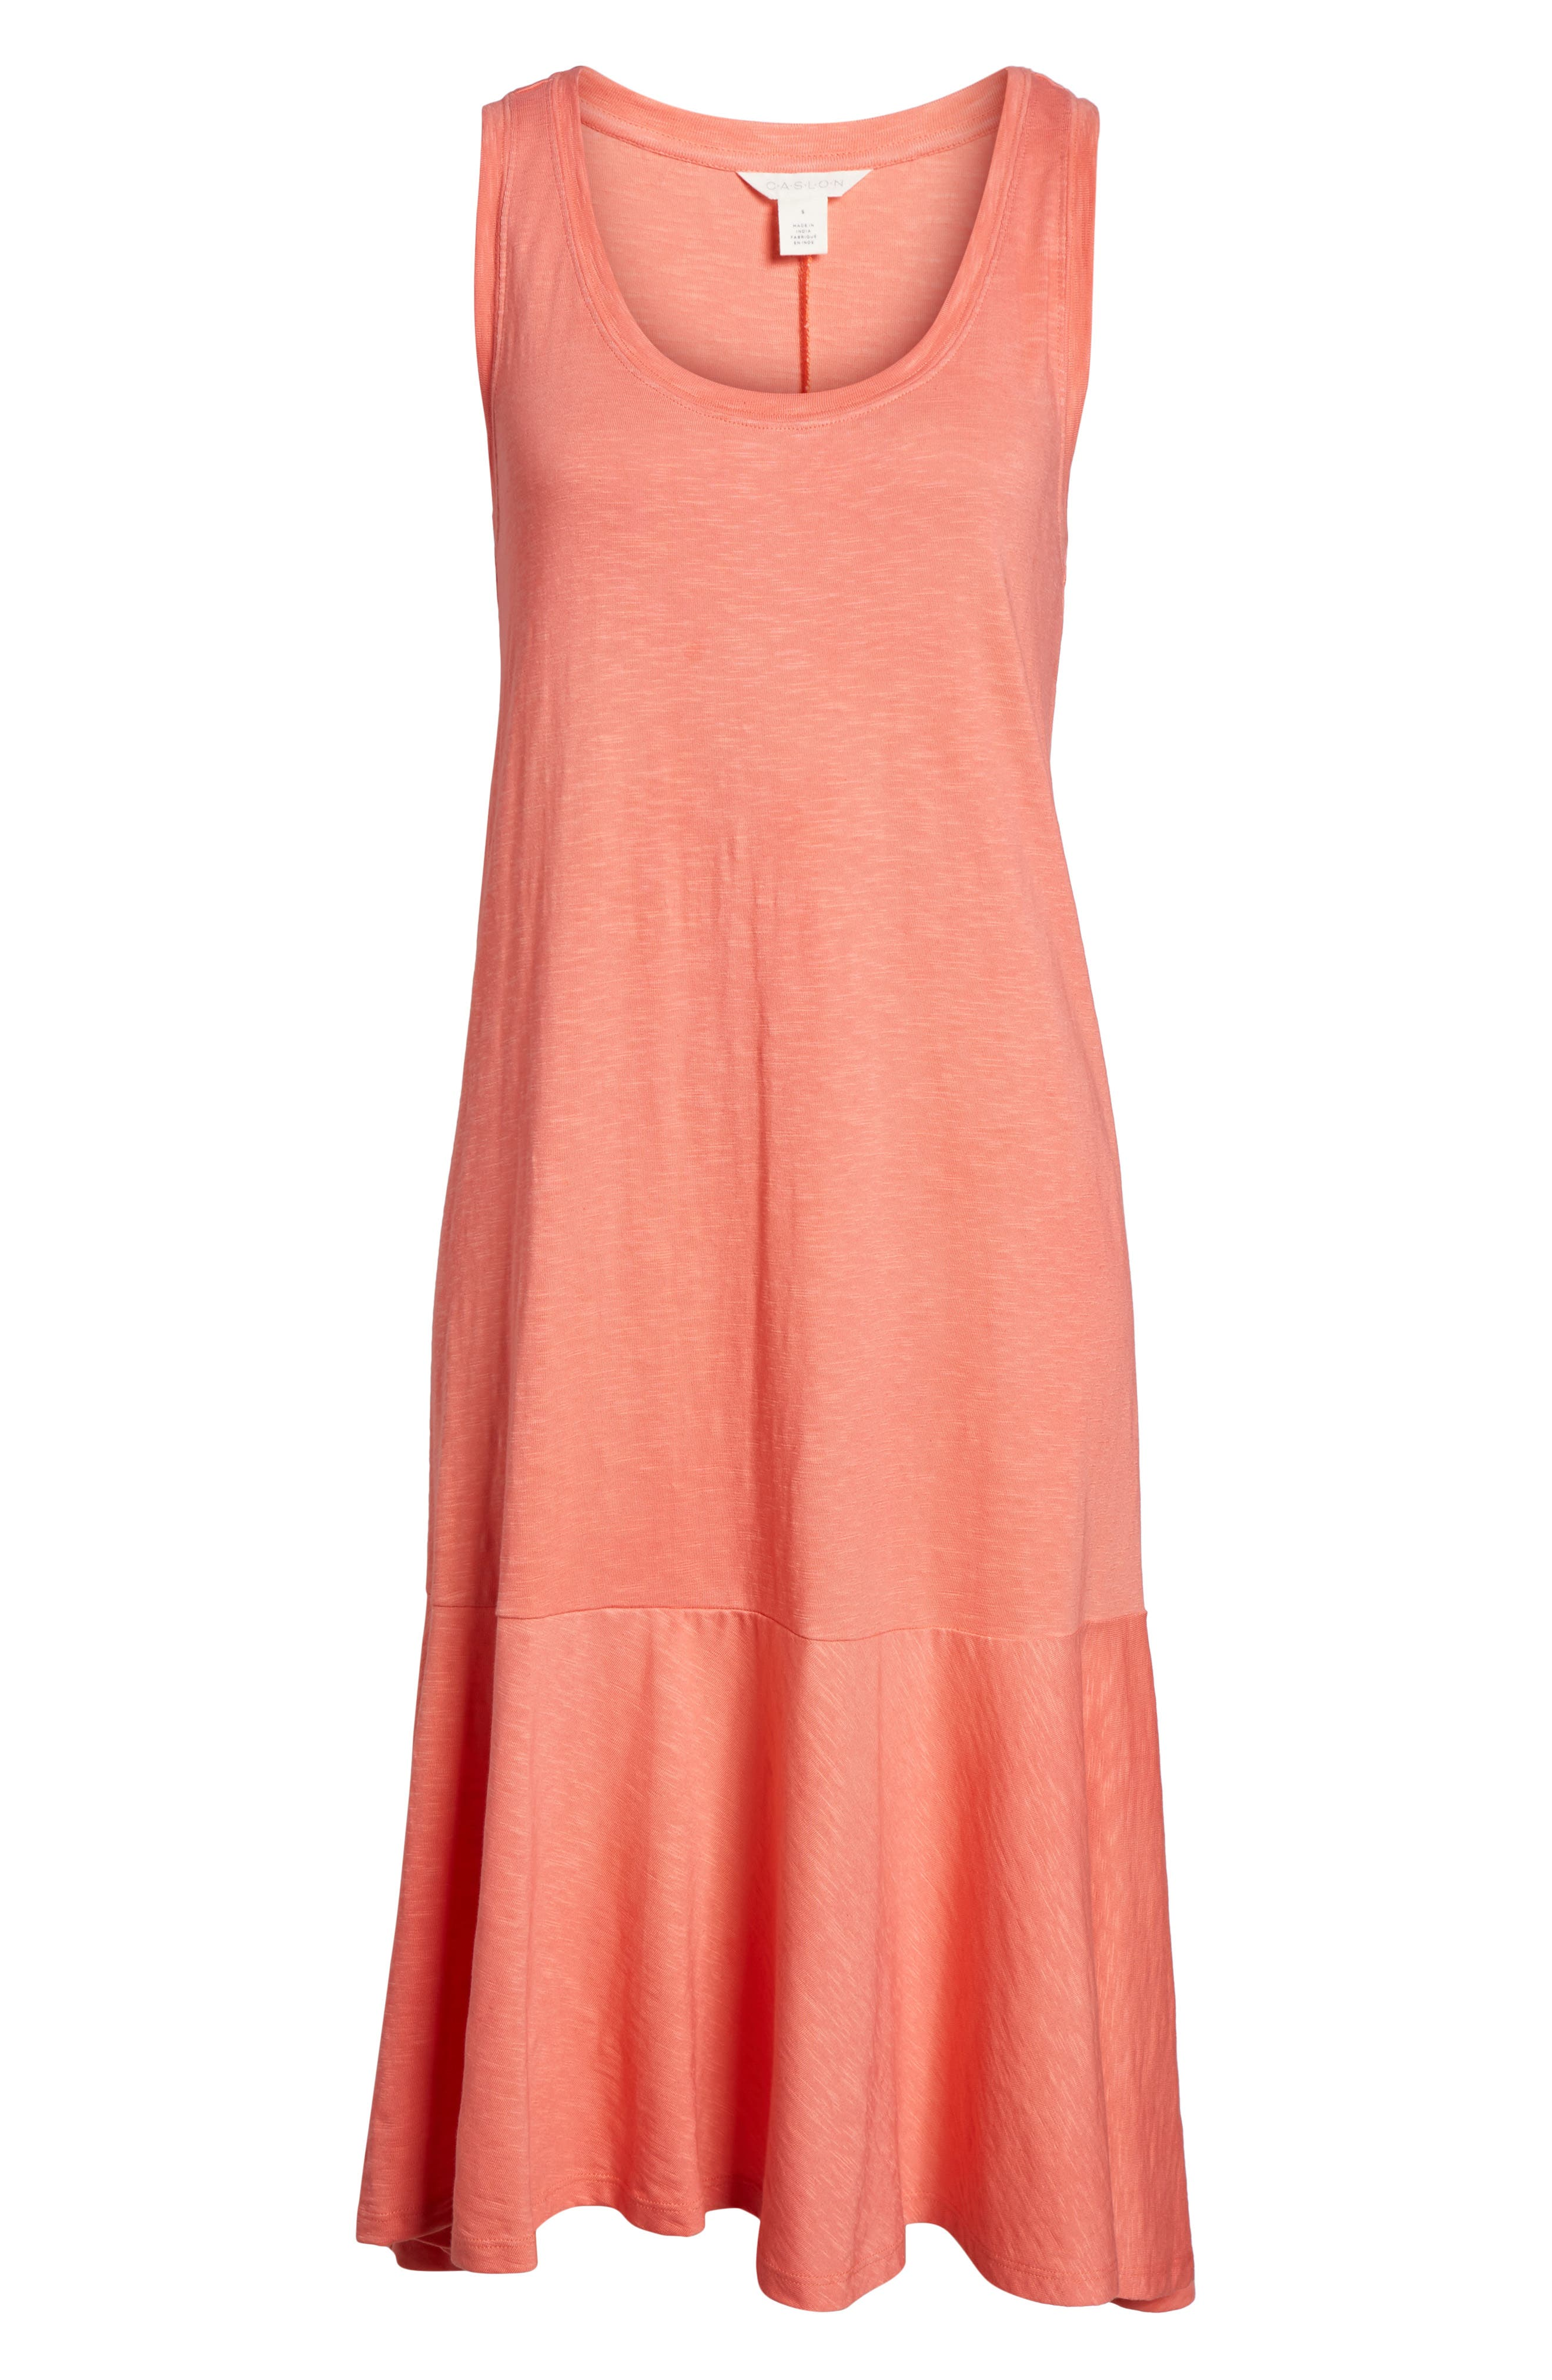 Drop Waist Jersey Dress,                             Alternate thumbnail 6, color,                             Coral Rose